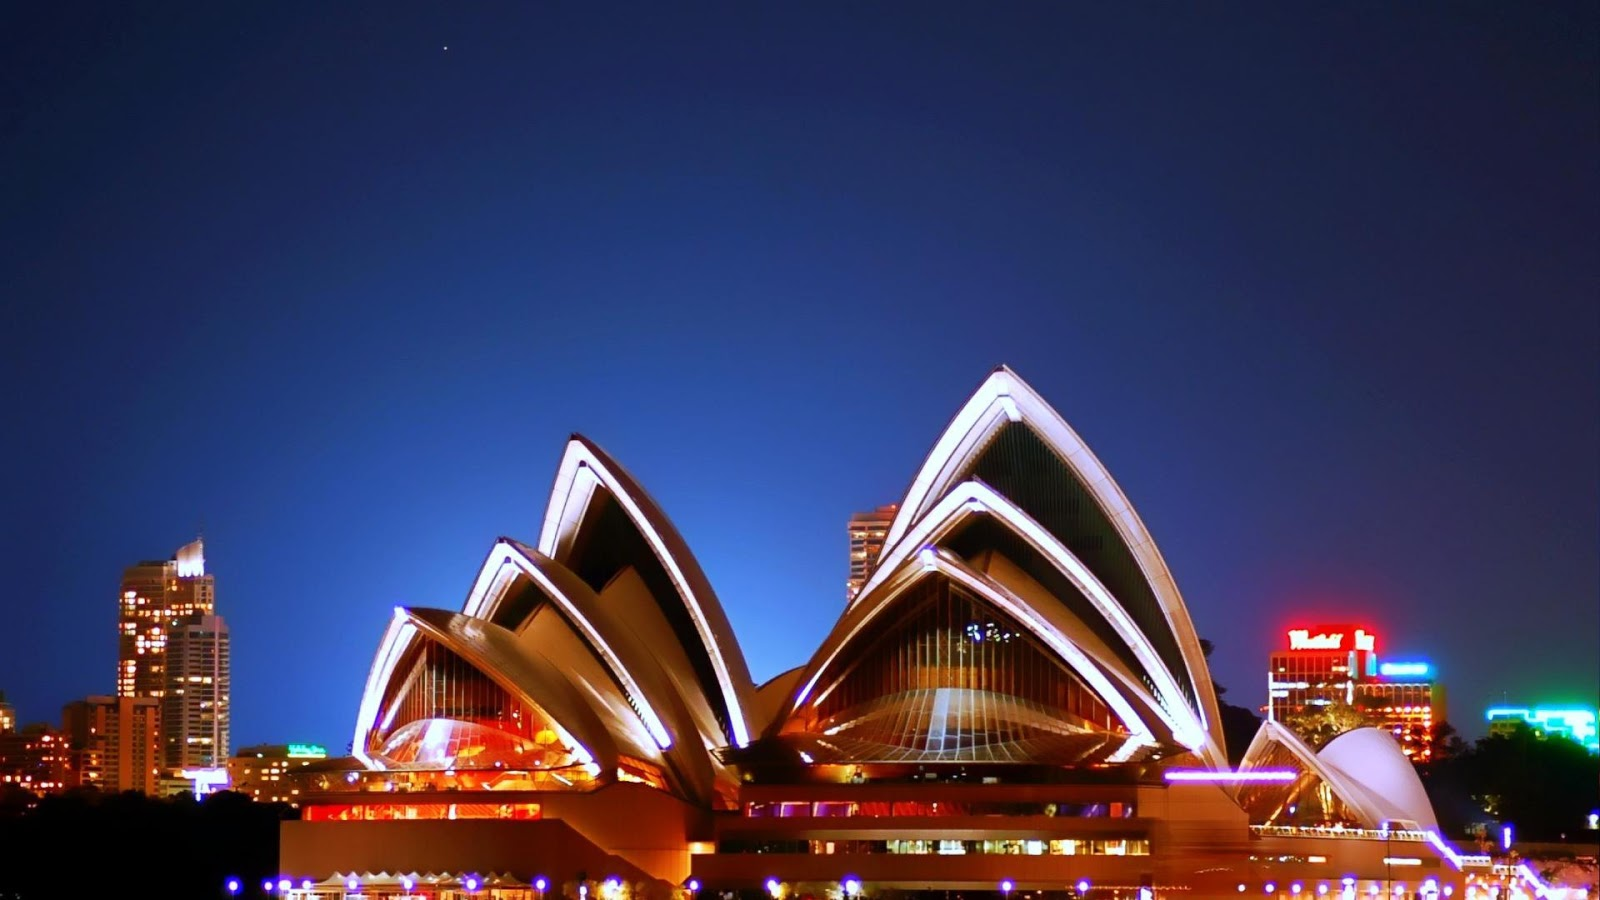 sydney opera house and australia Experience the world's best loved operas with opera australia at iconic venues - the sydney opera house & the arts centre melbourne.